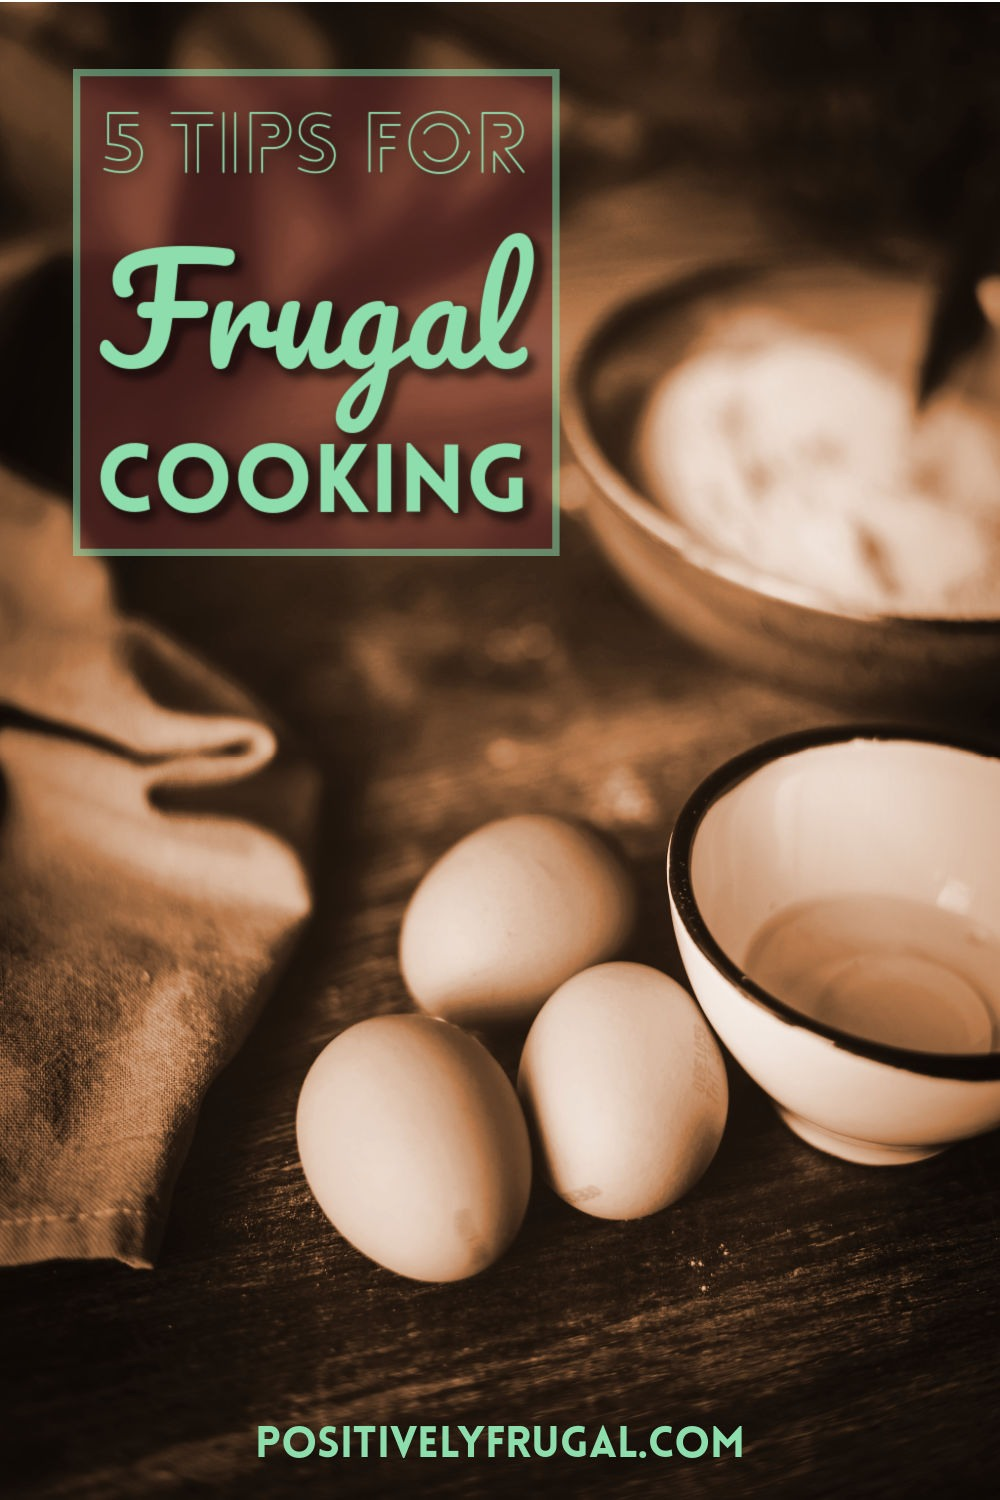 Five Tips for Frugal Cooking by PositivelyFrugal.com